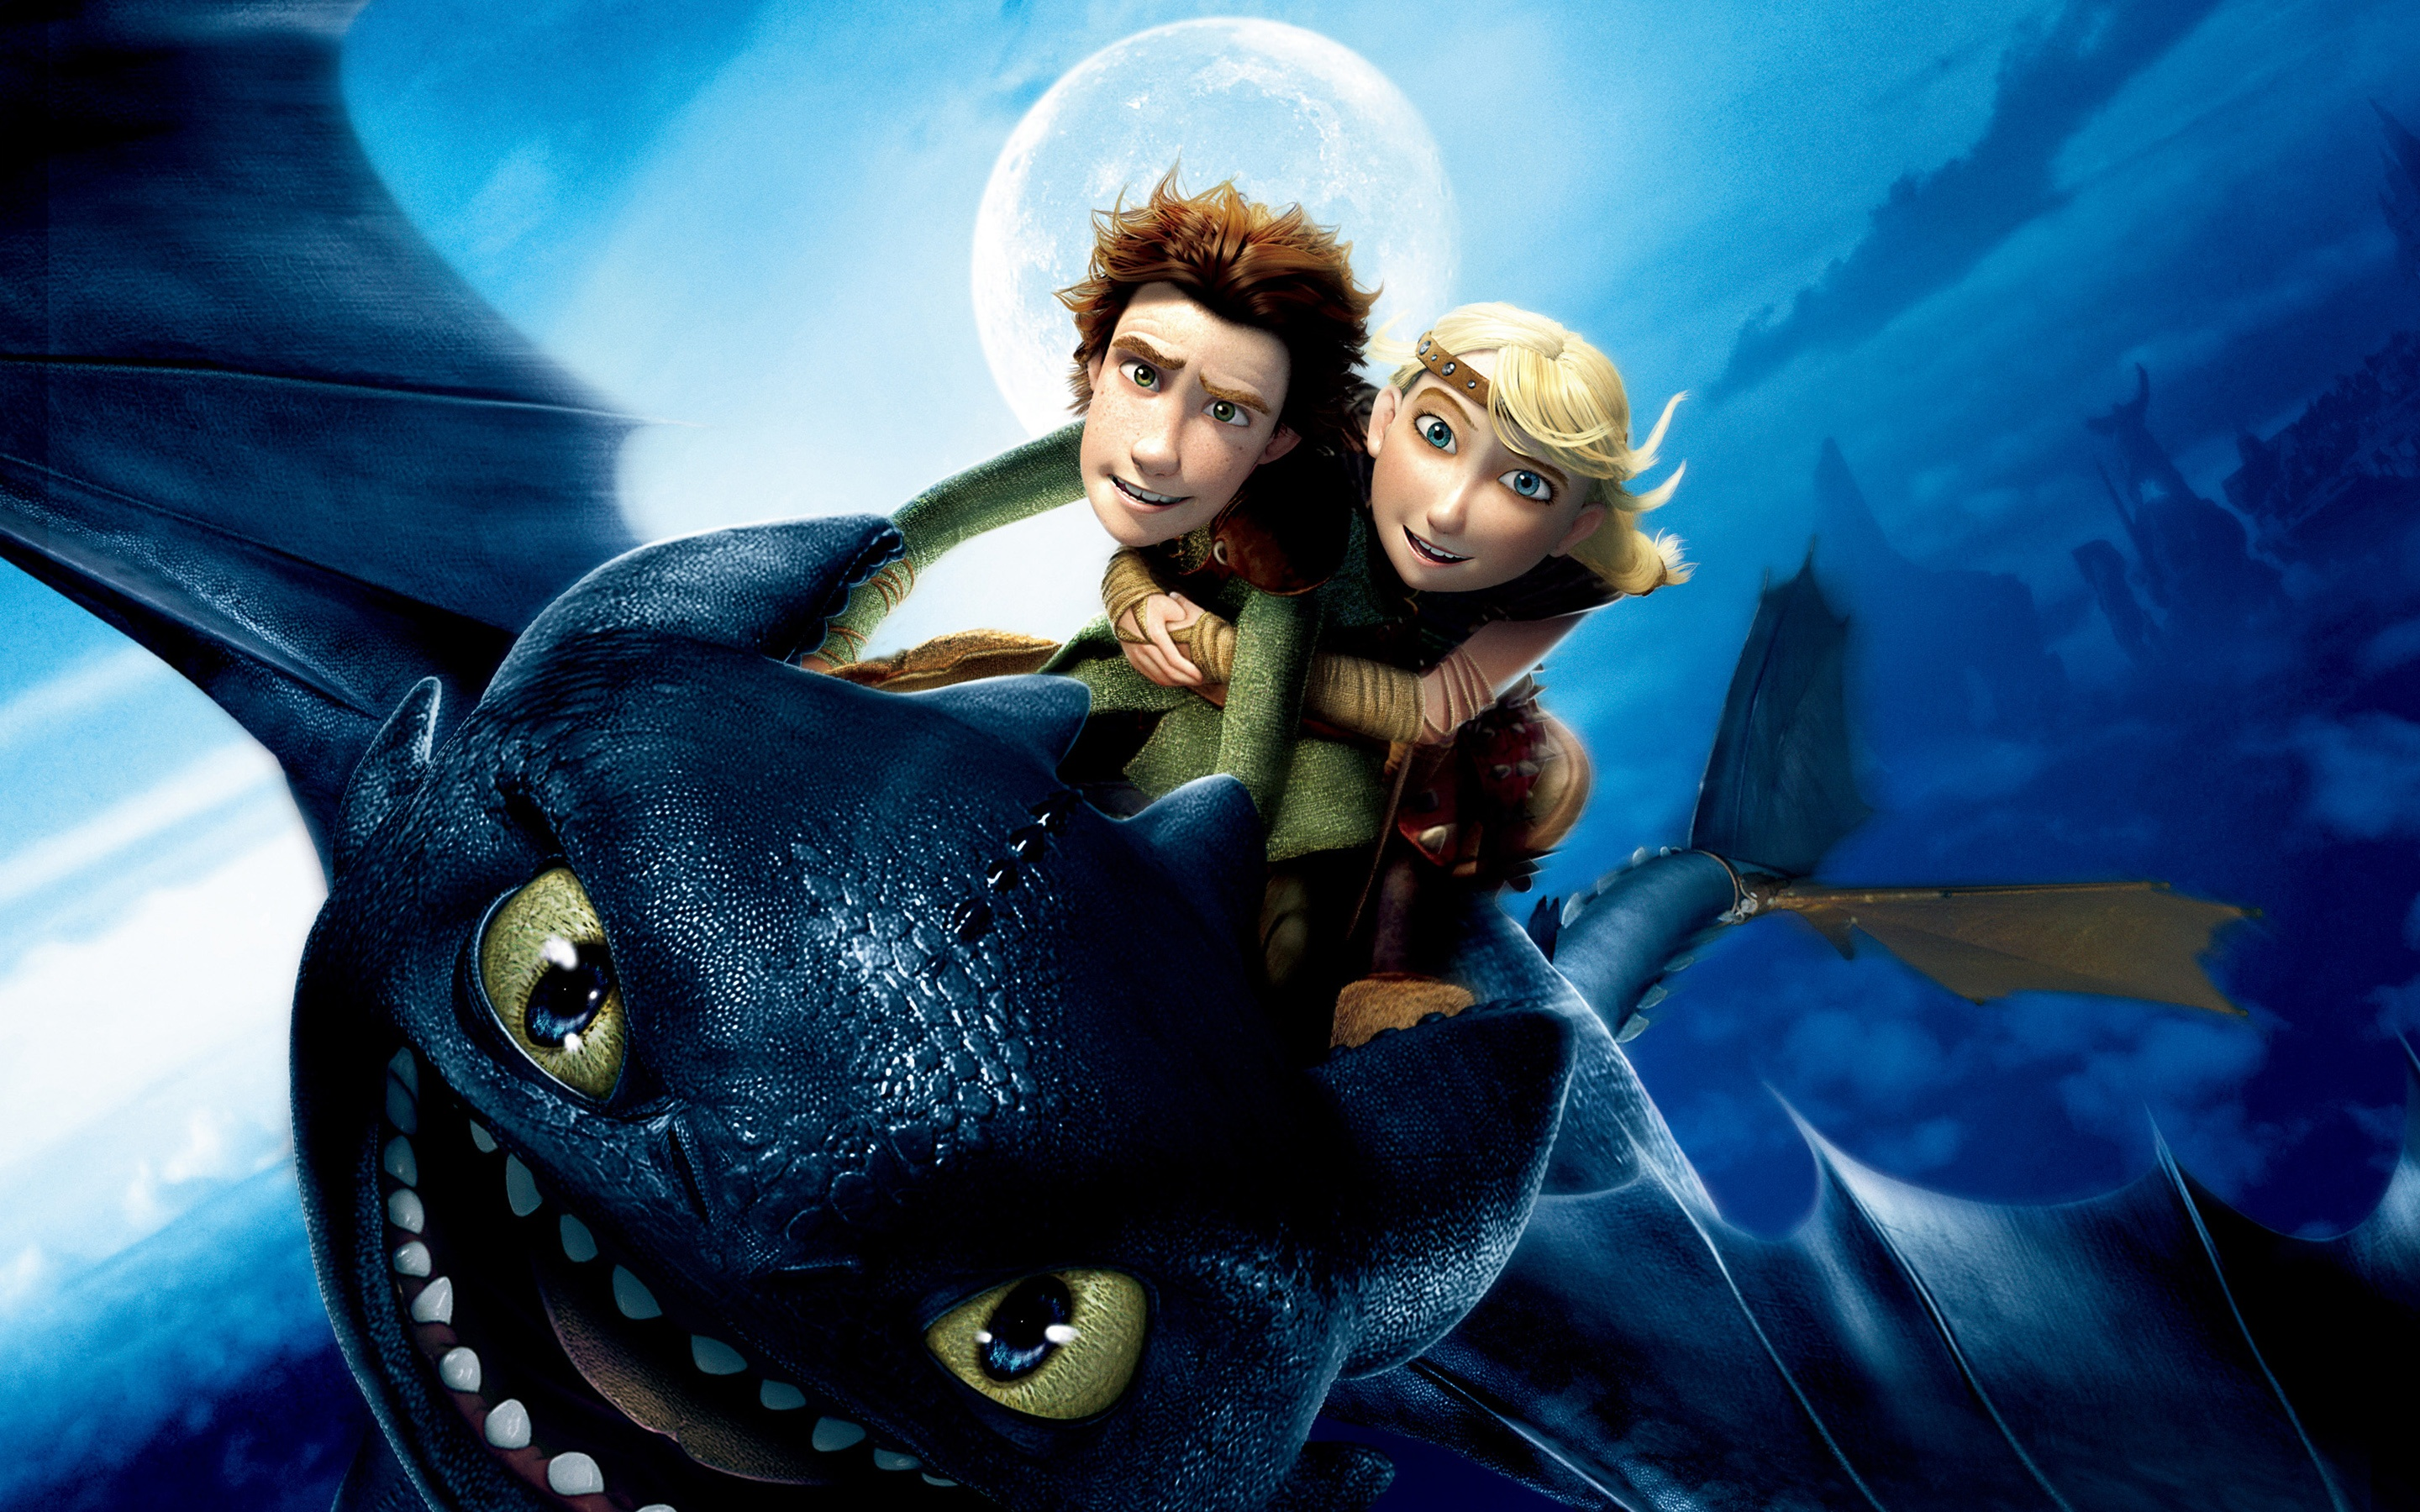 How To Train Your Dragon Hd Wallpapers In Jpg Format For Free Download